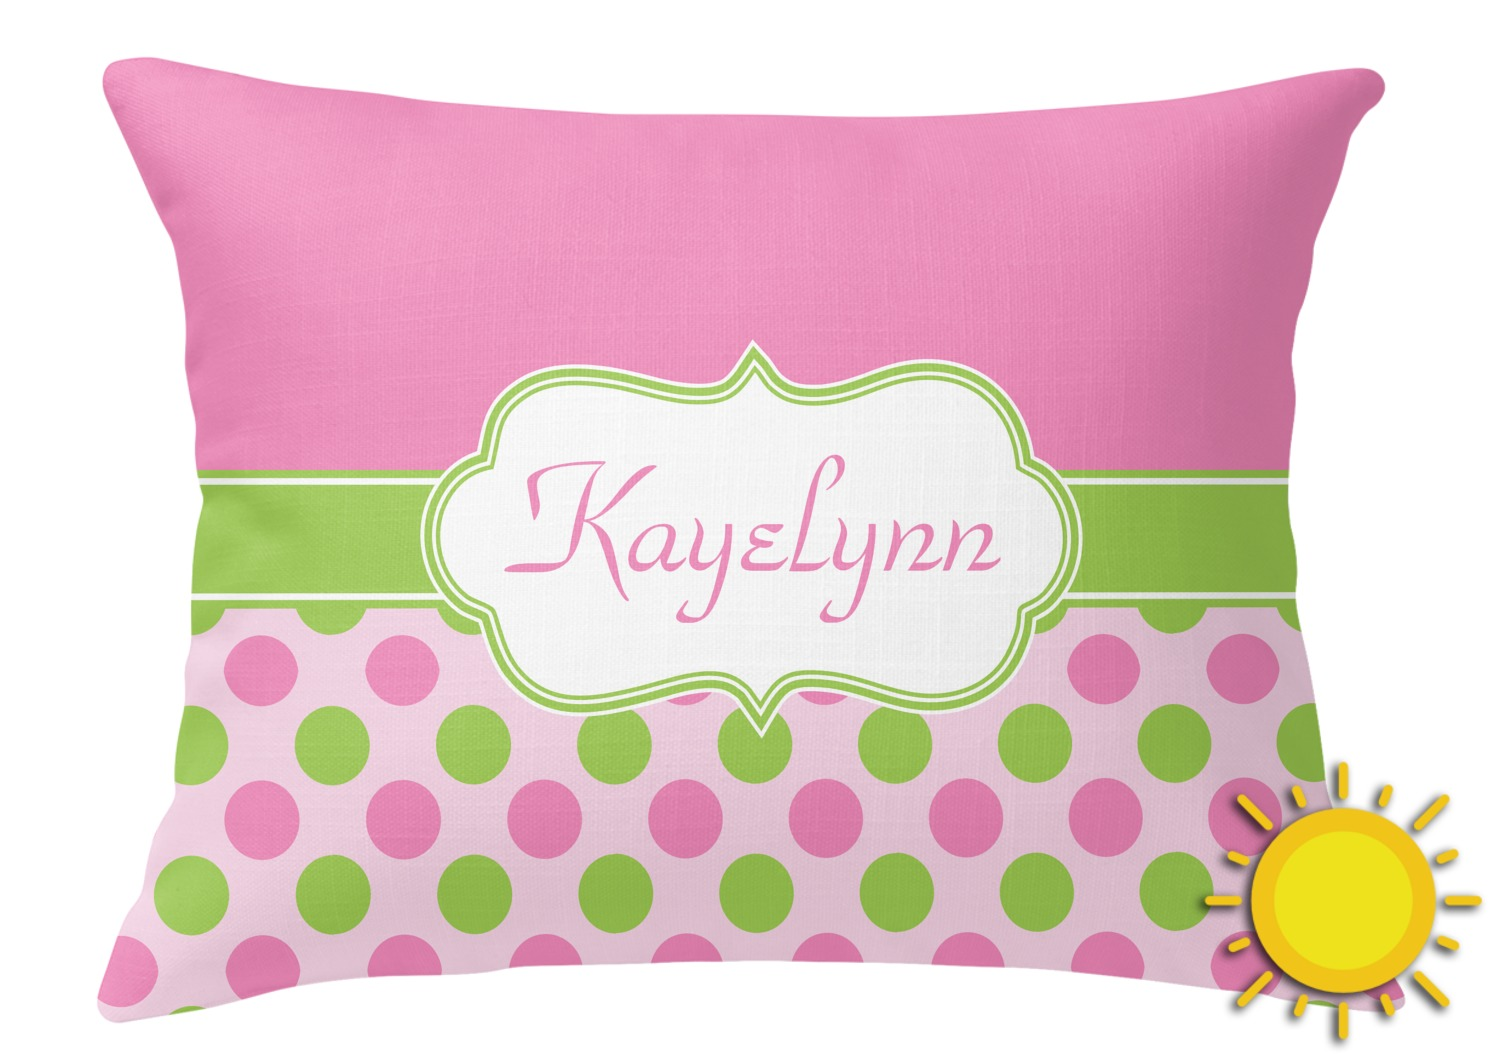 Hot Pink Outdoor Throw Pillows : Pink & Green Dots Outdoor Throw Pillow (Rectangular) (Personalized) - YouCustomizeIt